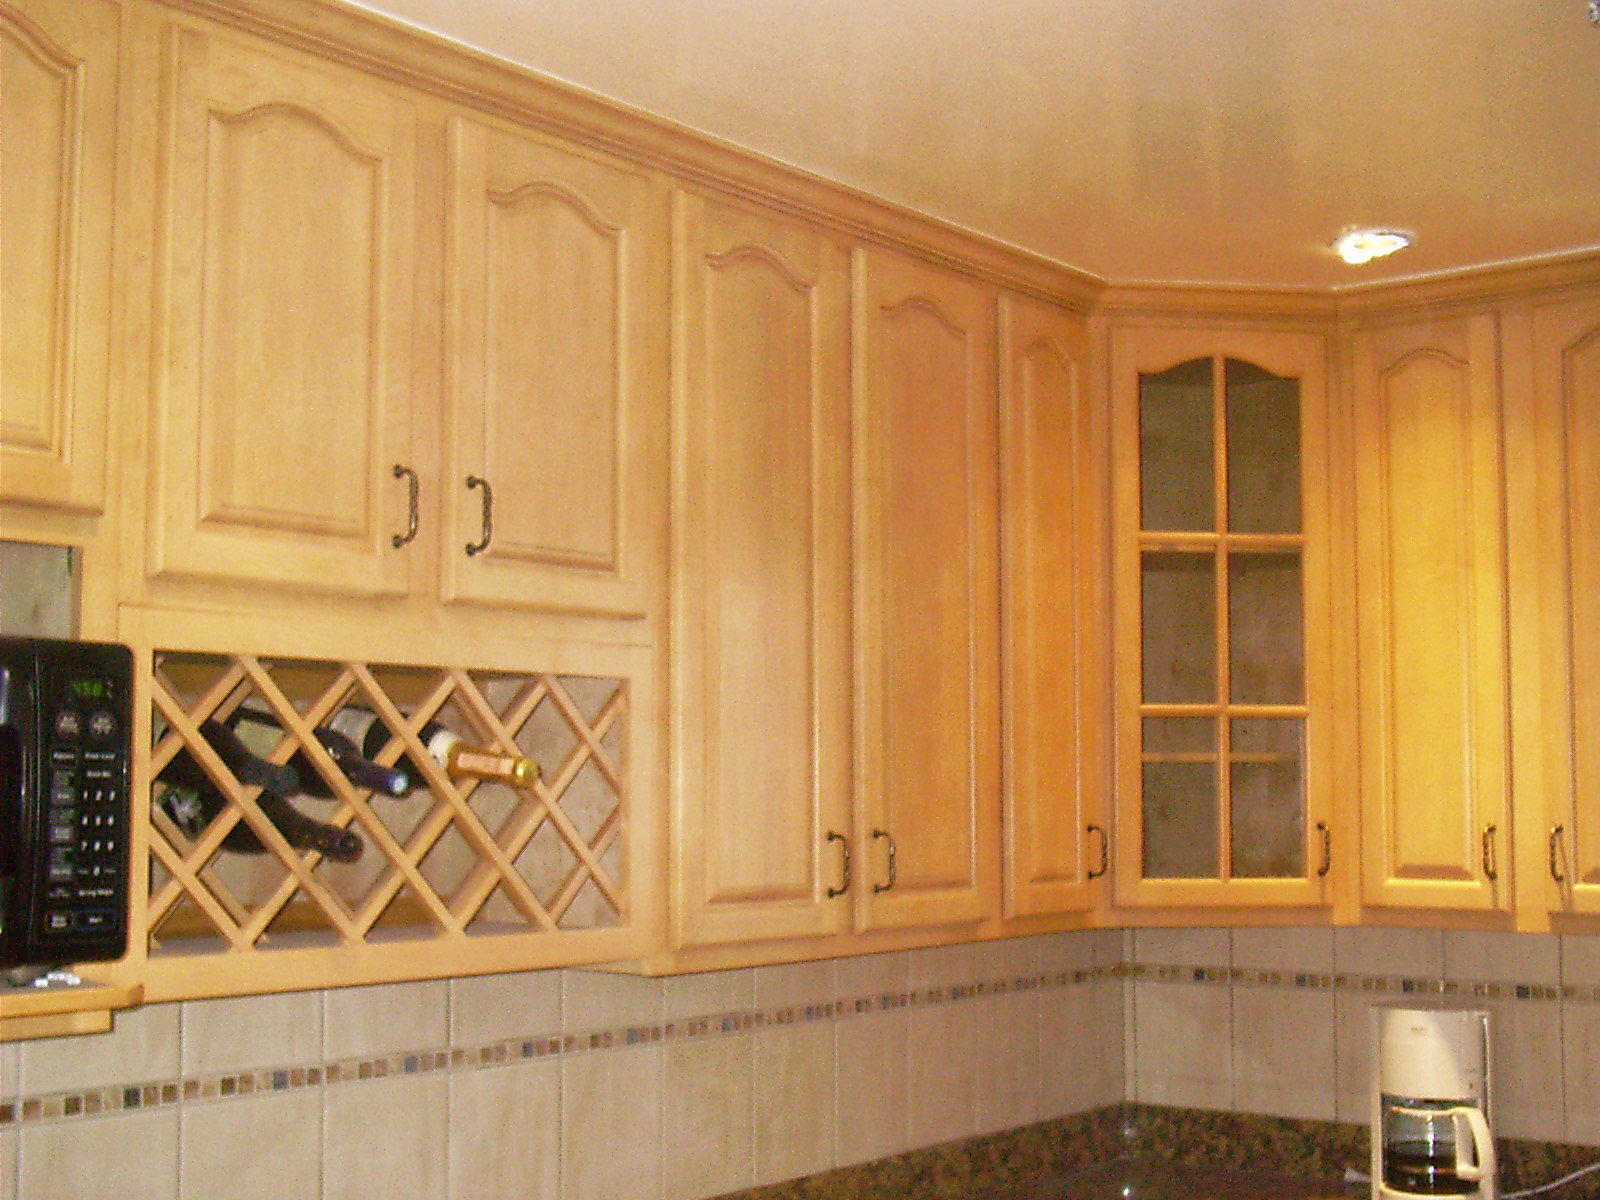 Shelving for kitchen cabinets Photo - 1